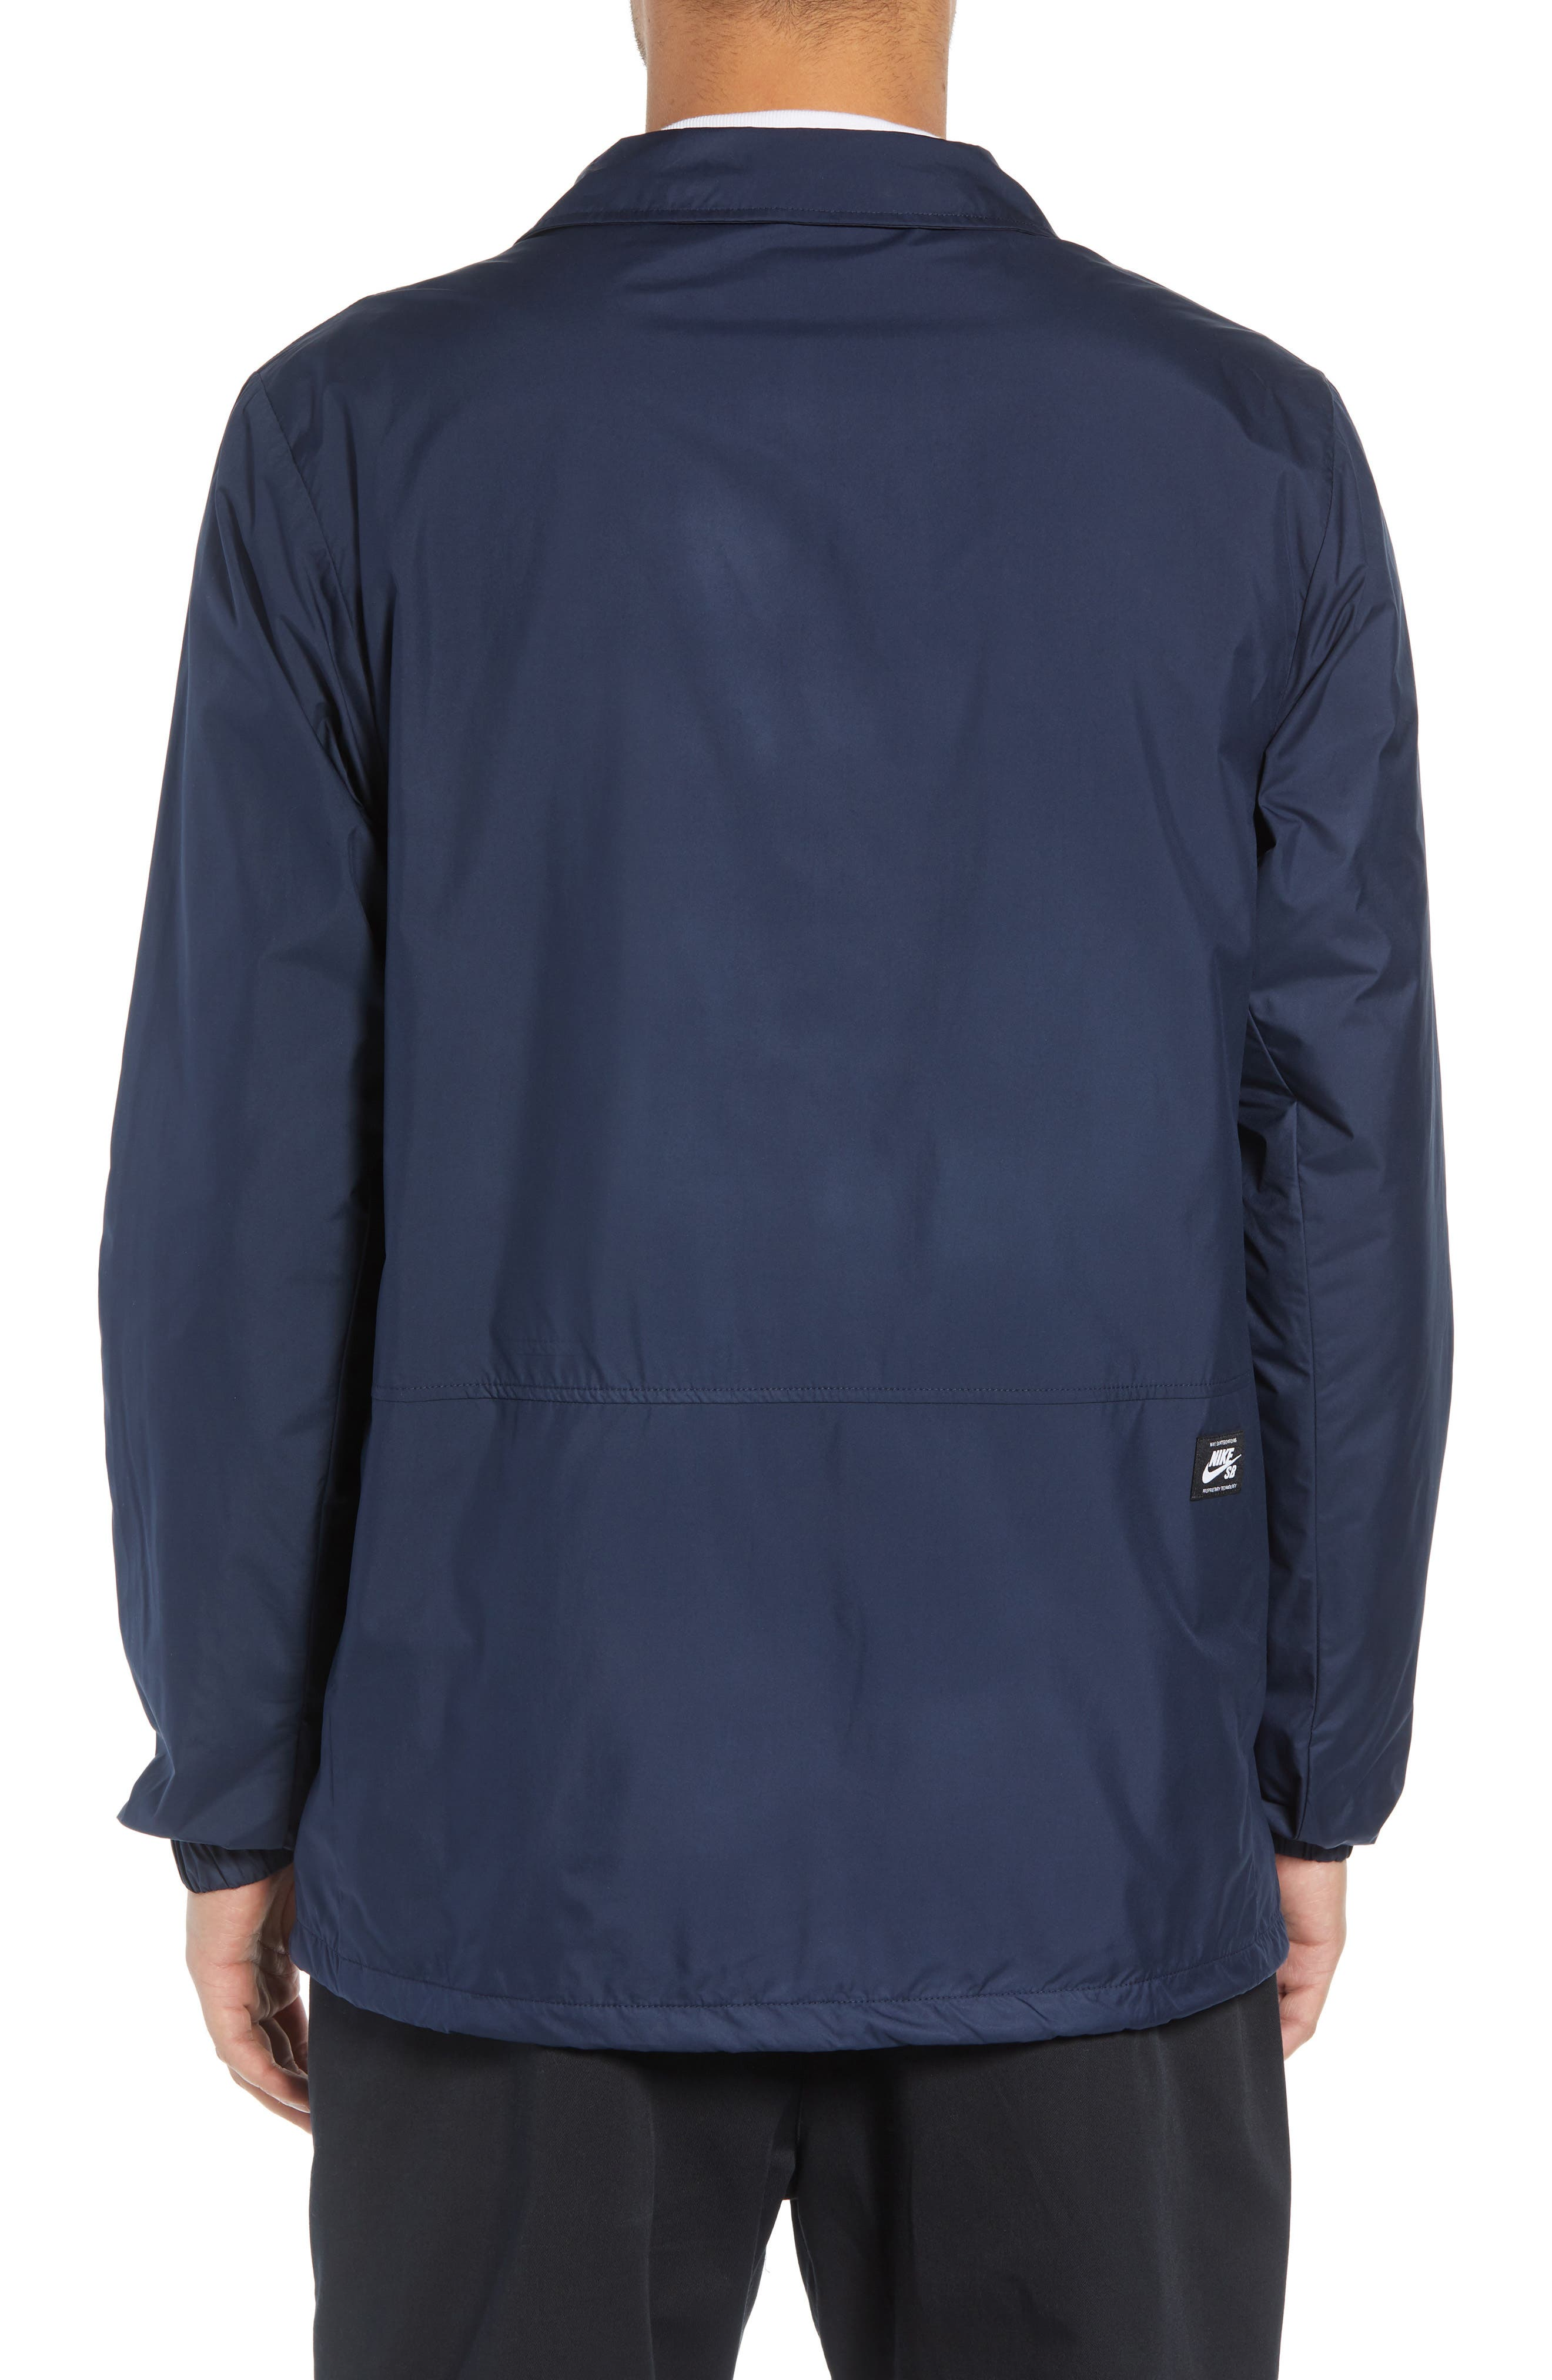 SB Shield Coach's Jacket,                             Alternate thumbnail 2, color,                             OBSIDIAN/ ANTHRACITE